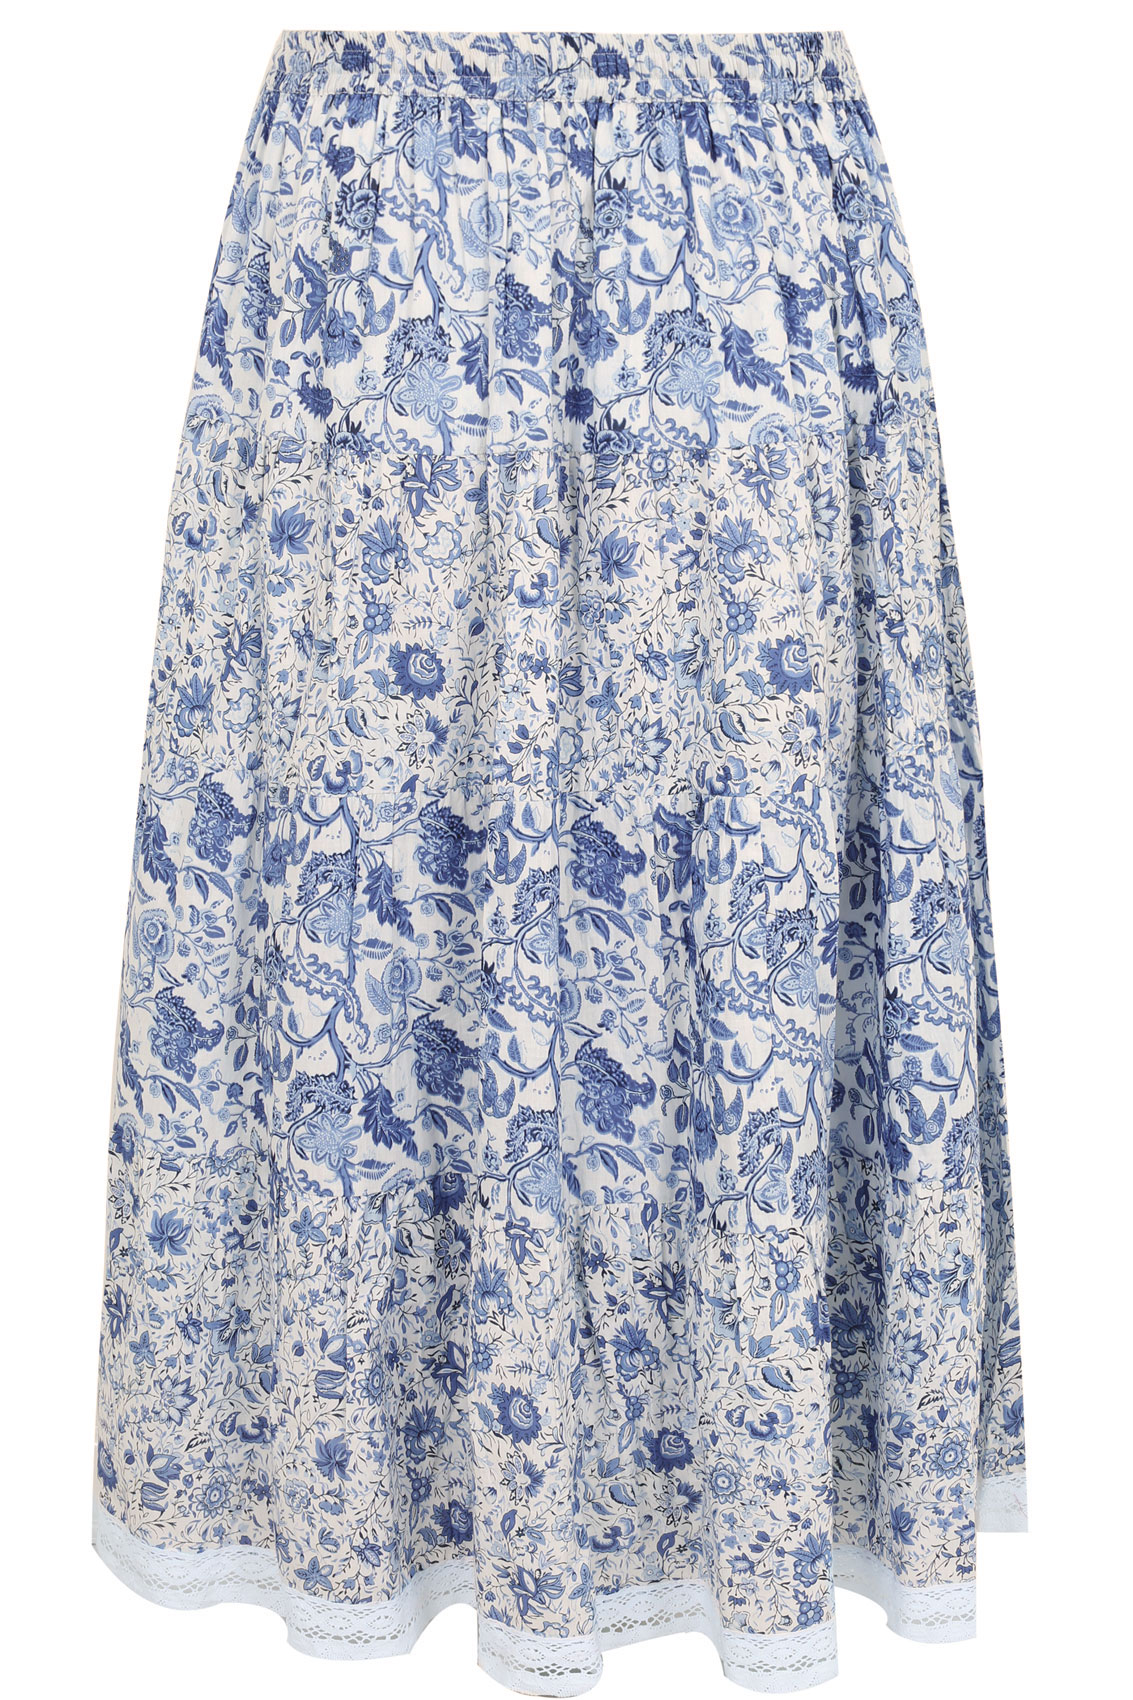 blue white floral mix match maxi skirt with